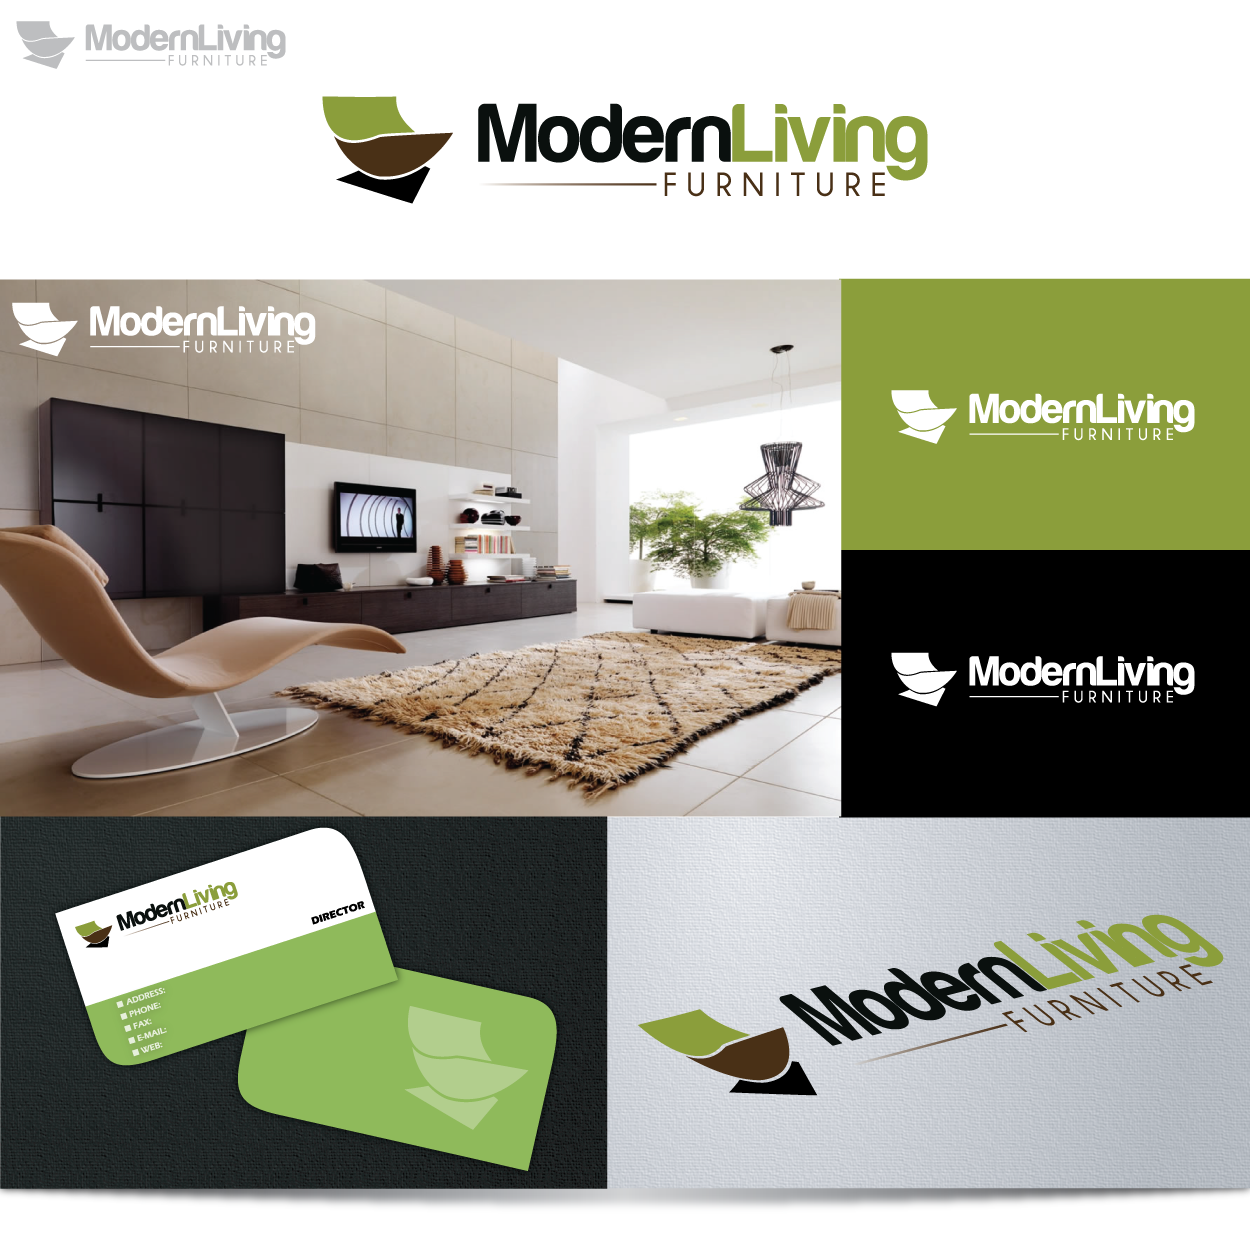 logo and business card for Modern Living Furniture